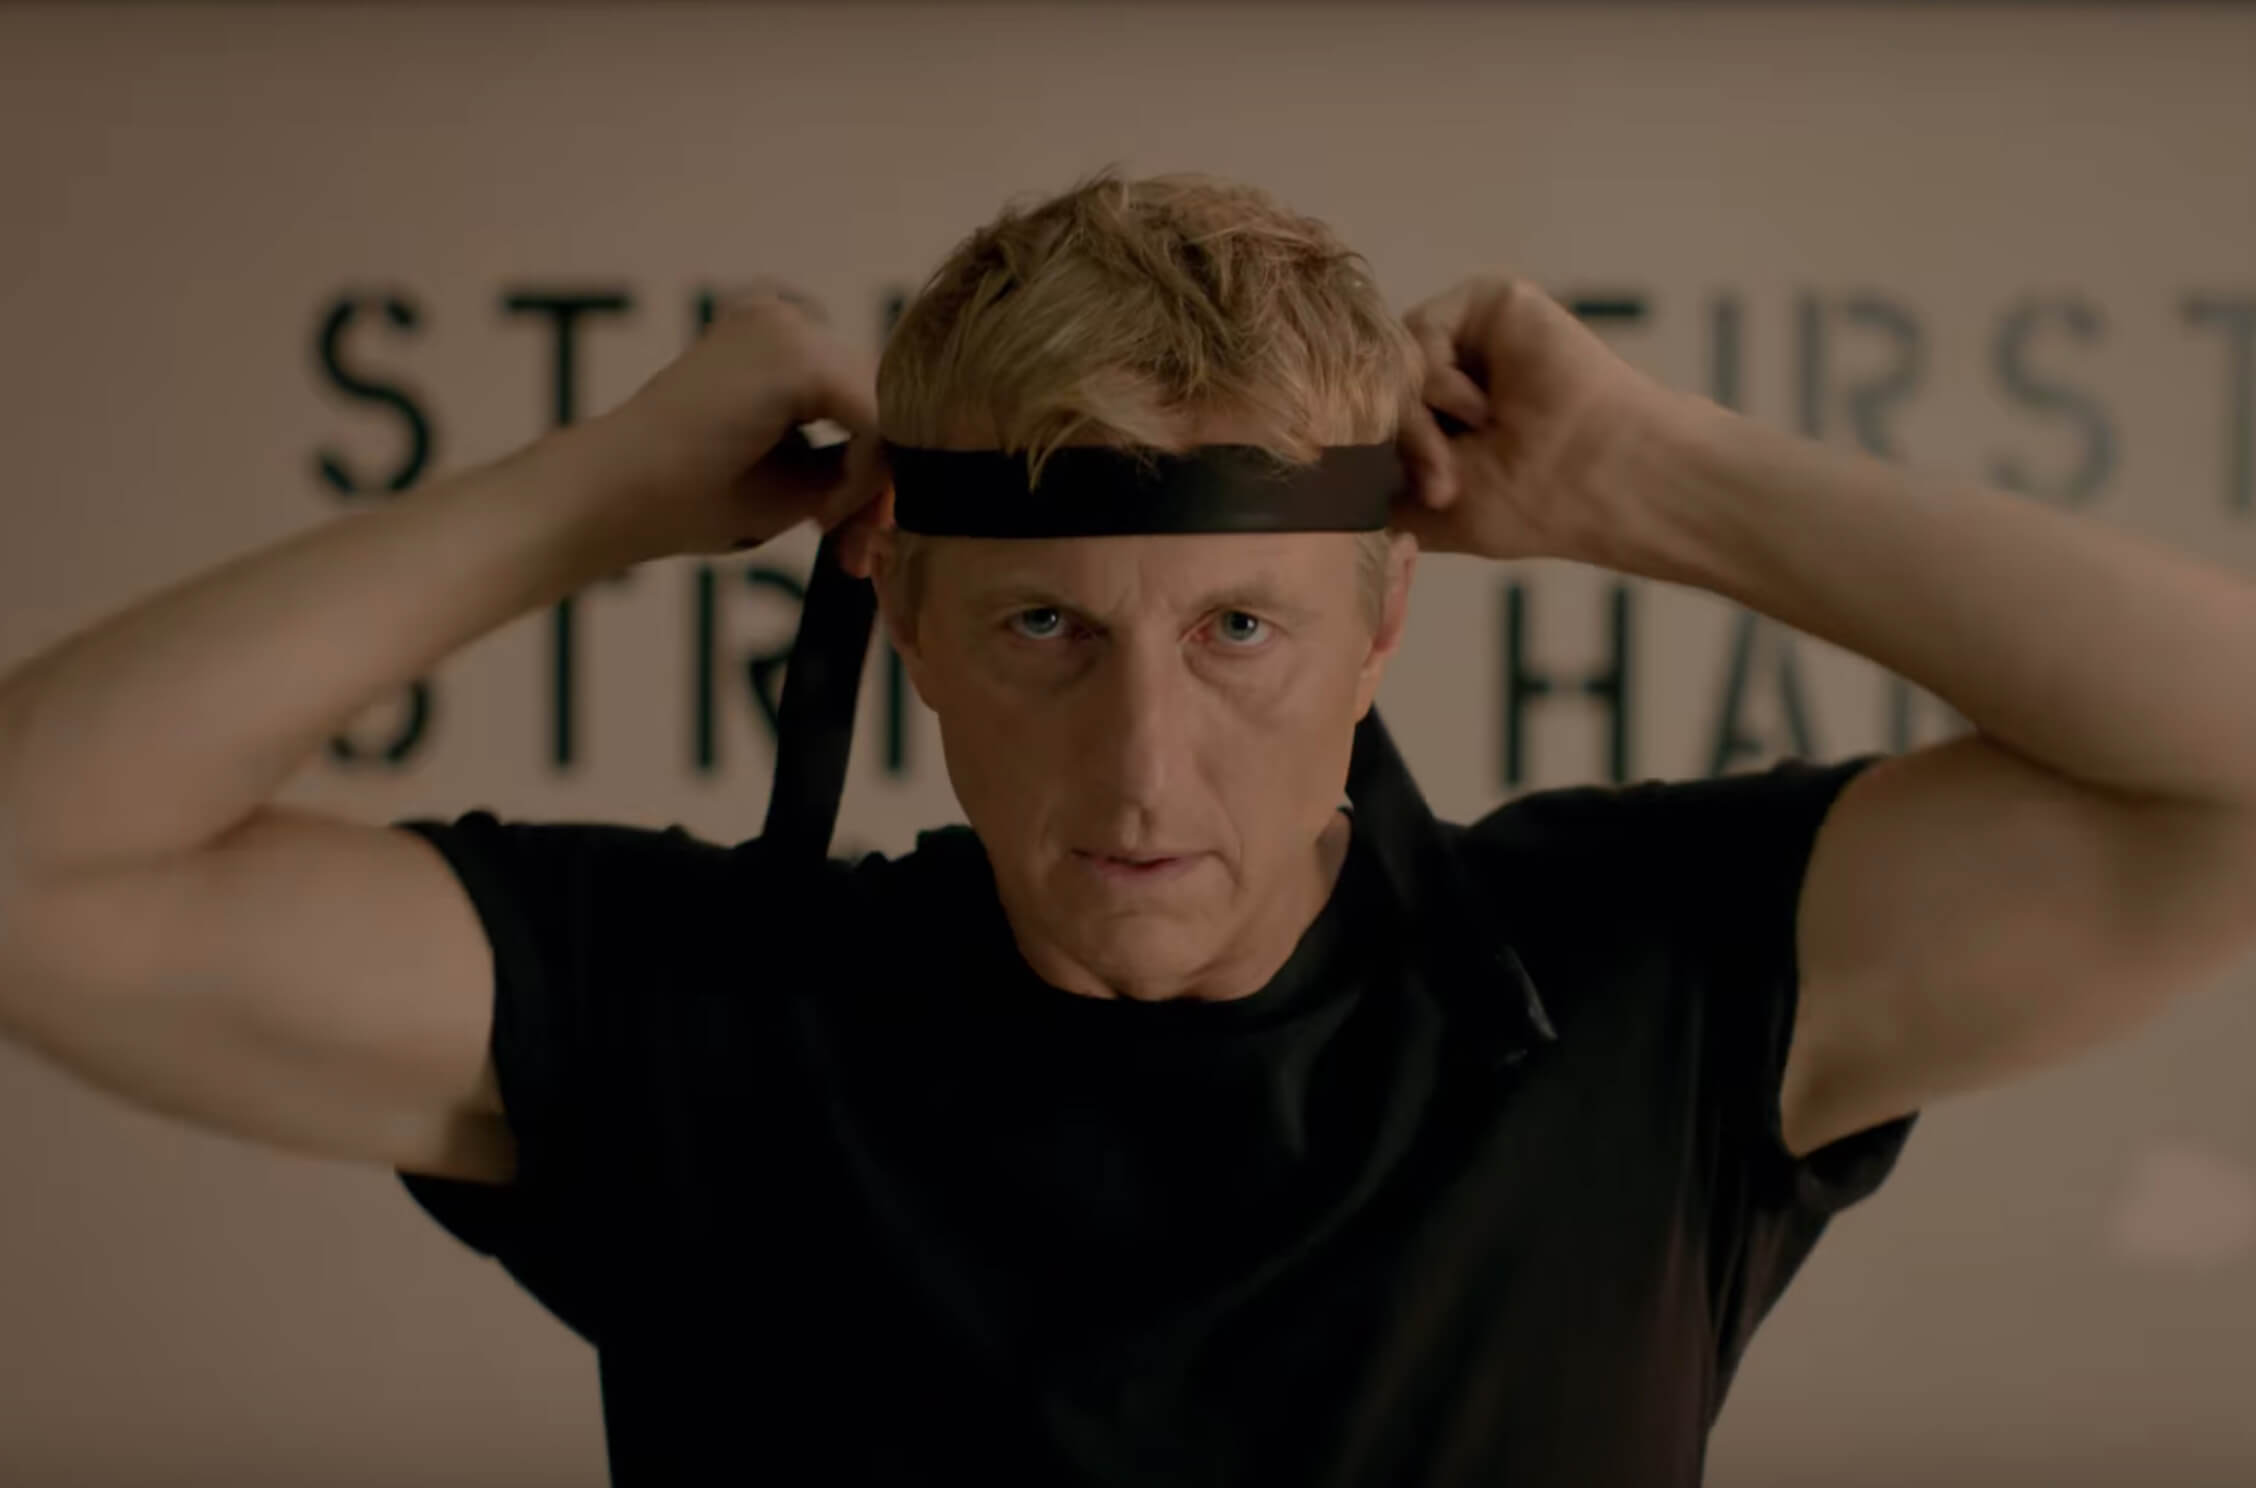 'Cobra Kai': YouTube Red's 'Karate Kid' Sequel Outperforms Netflix, Hulu Shows